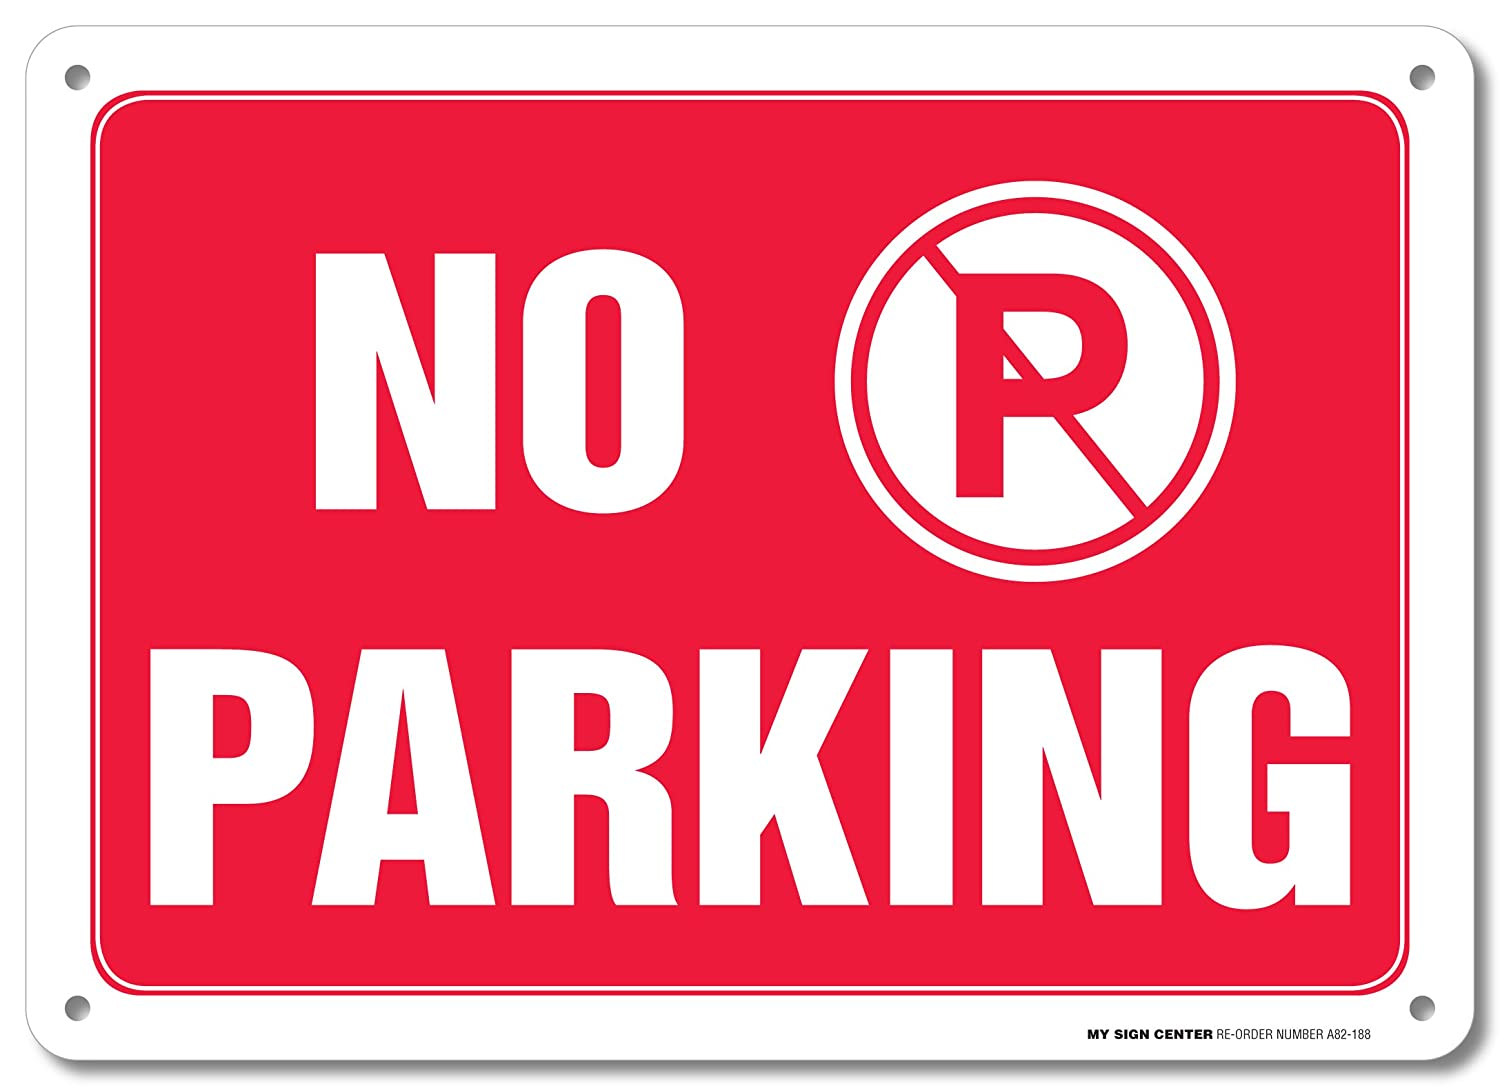 No Parking Warning Sign - Do Not Block Driveway - 10 X 14 - .040 Rust Free Heavy Duty Aluminum - Made in USA - UV Protected and Weatherproof - A82-188